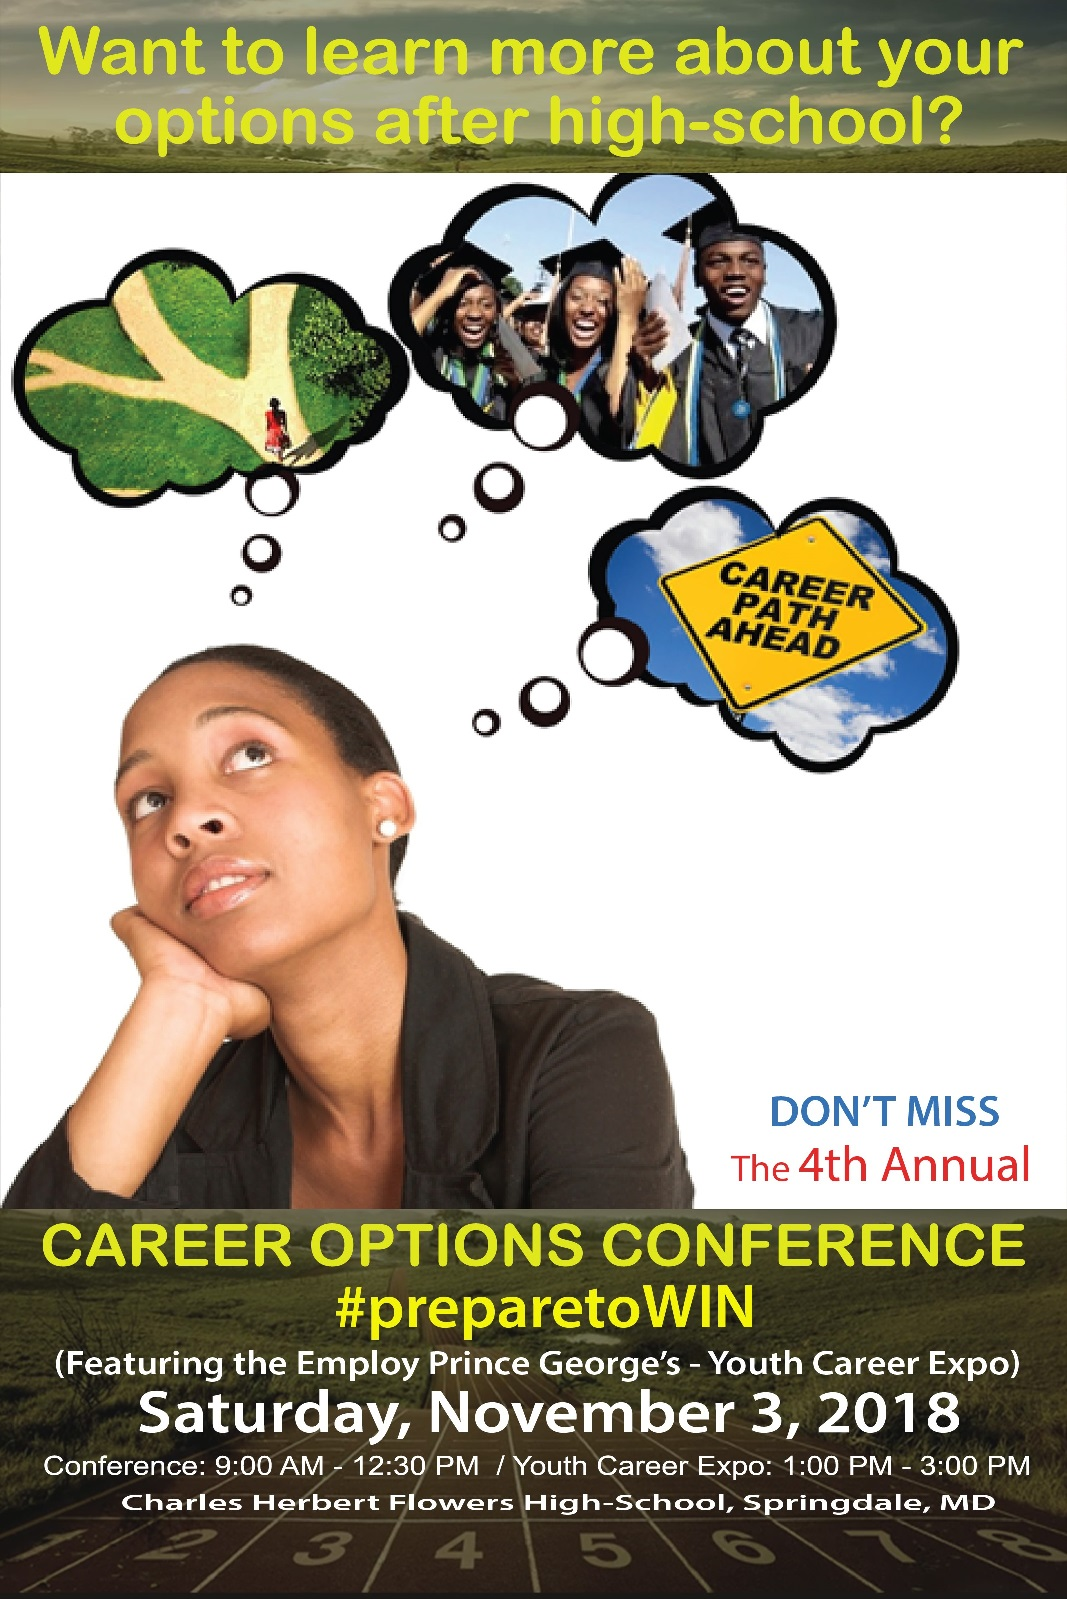 4th Annual Career Options Conference/Youth Career Expo